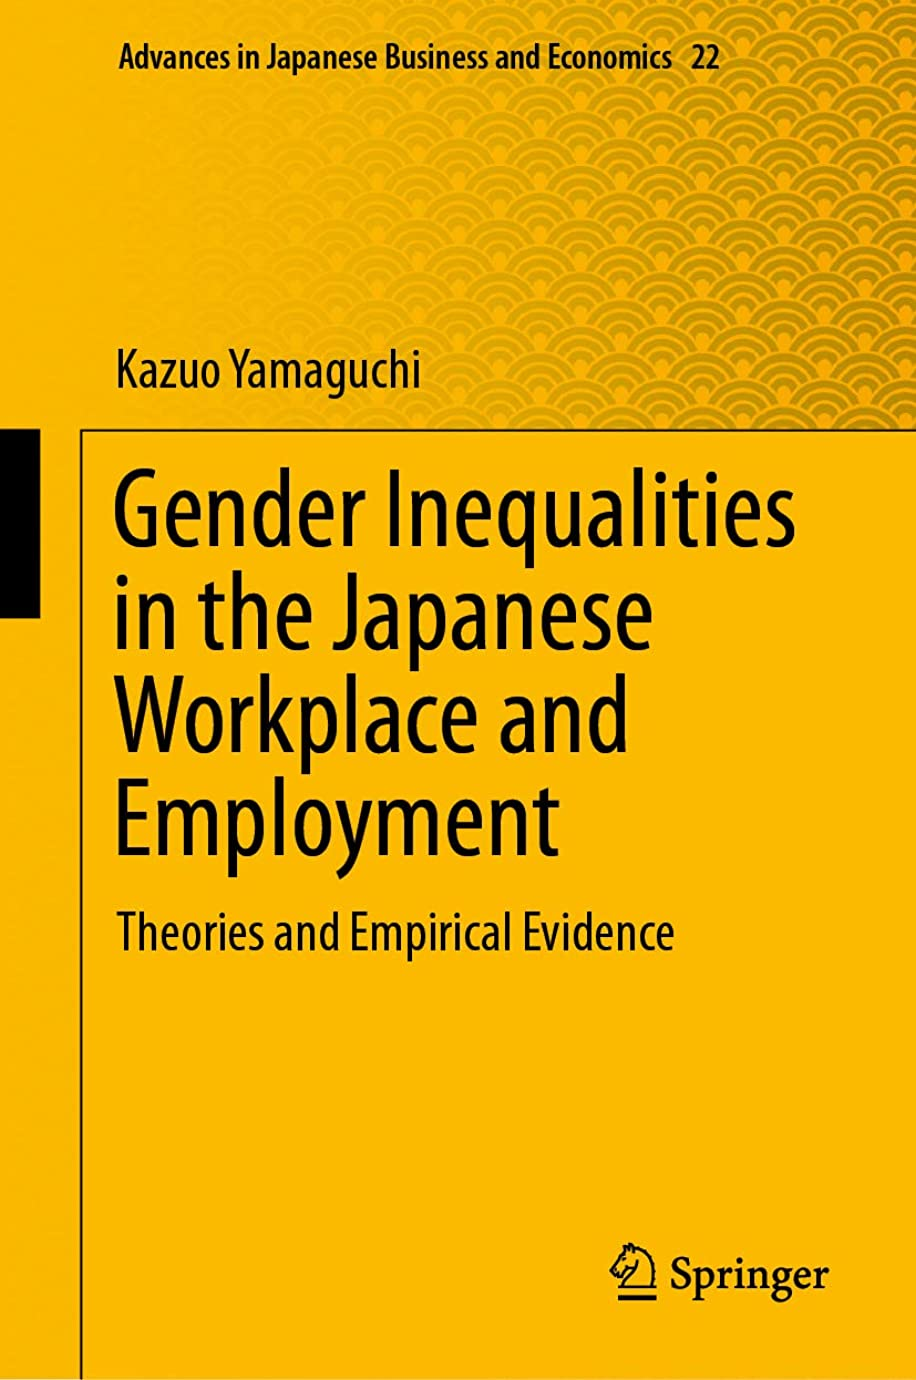 肉のチチカカ湖覗くGender Inequalities in the Japanese Workplace and Employment: Theories and Empirical Evidence (Advances in Japanese Business and Economics Book 22) (English Edition)